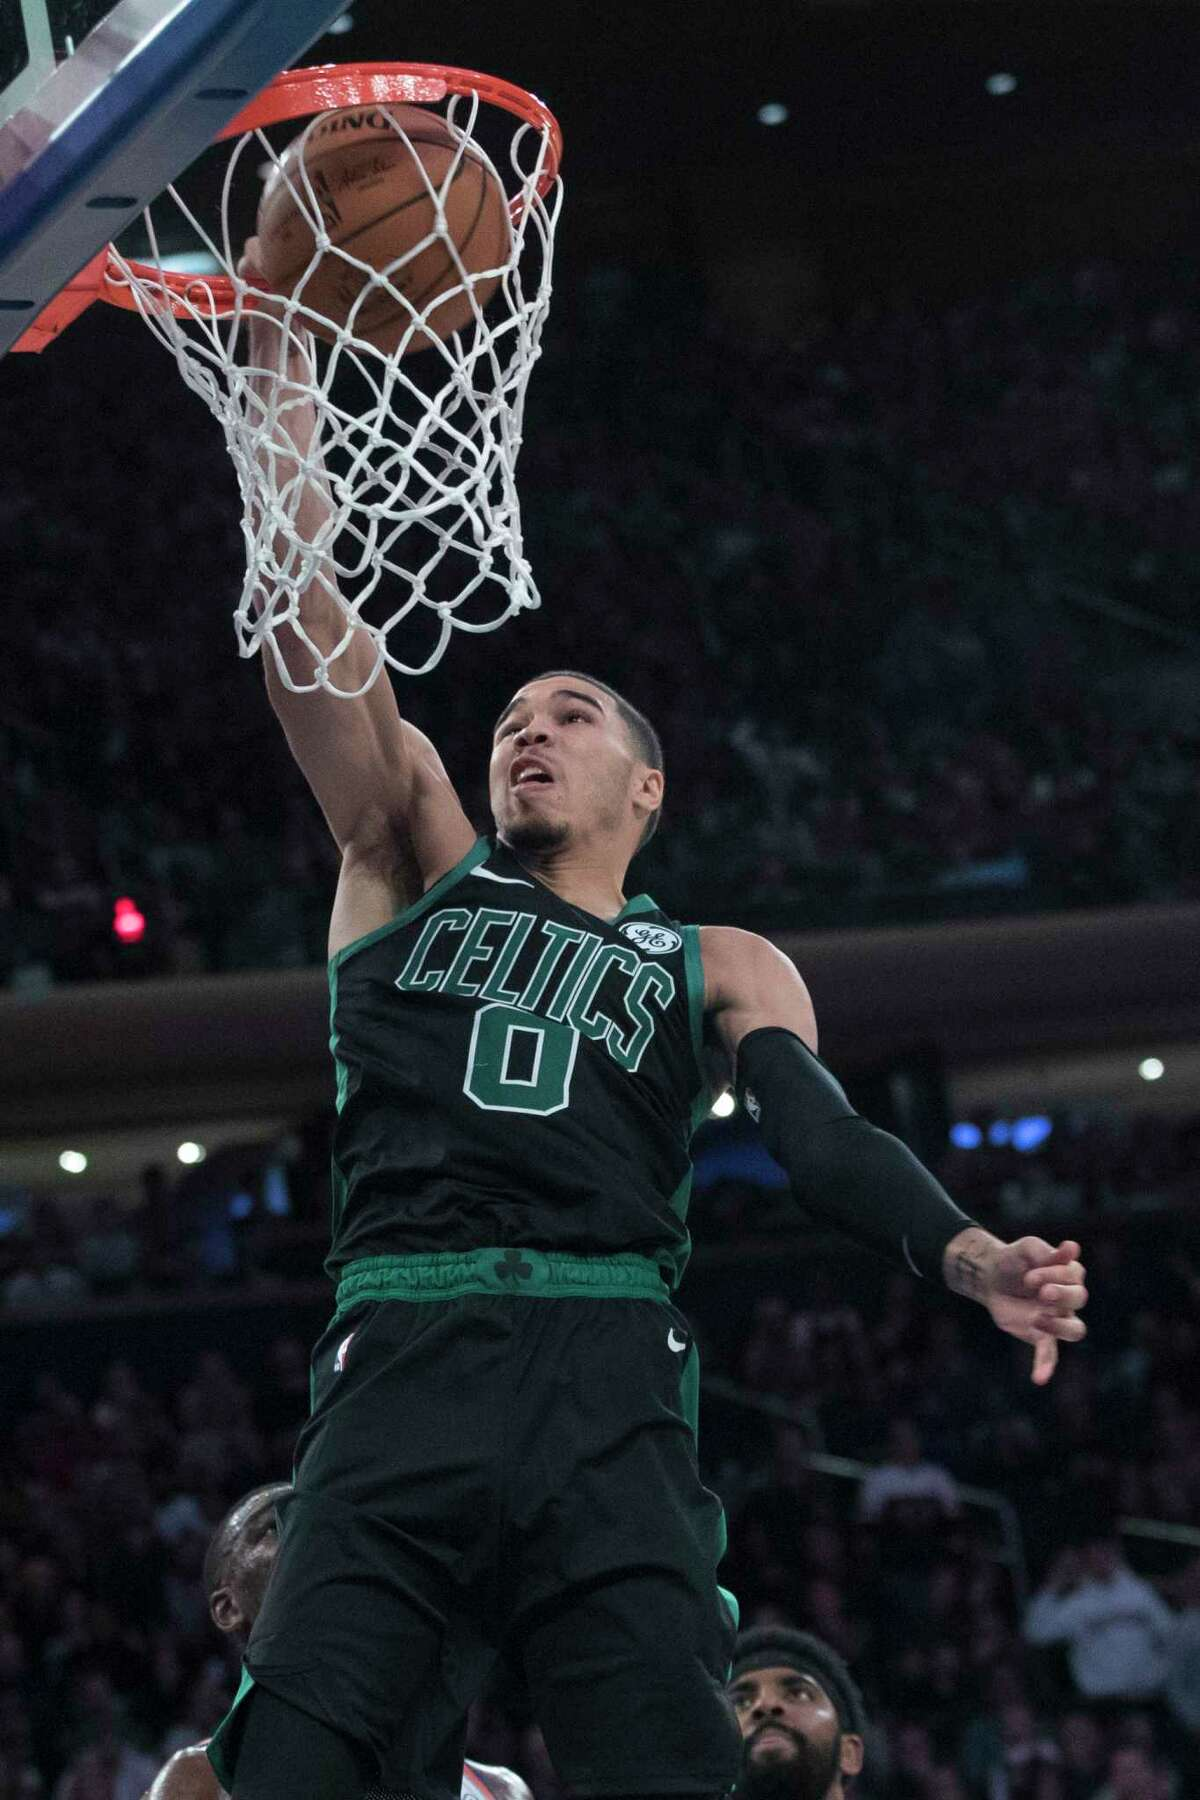 Boston Celtics forward Jayson Tatum dunks during the second half of an NBA basketball game against the New York Knicks, Saturday, Oct. 20, 2018, at Madison Square Garden in New York. (AP Photo/Mary Altaffer)